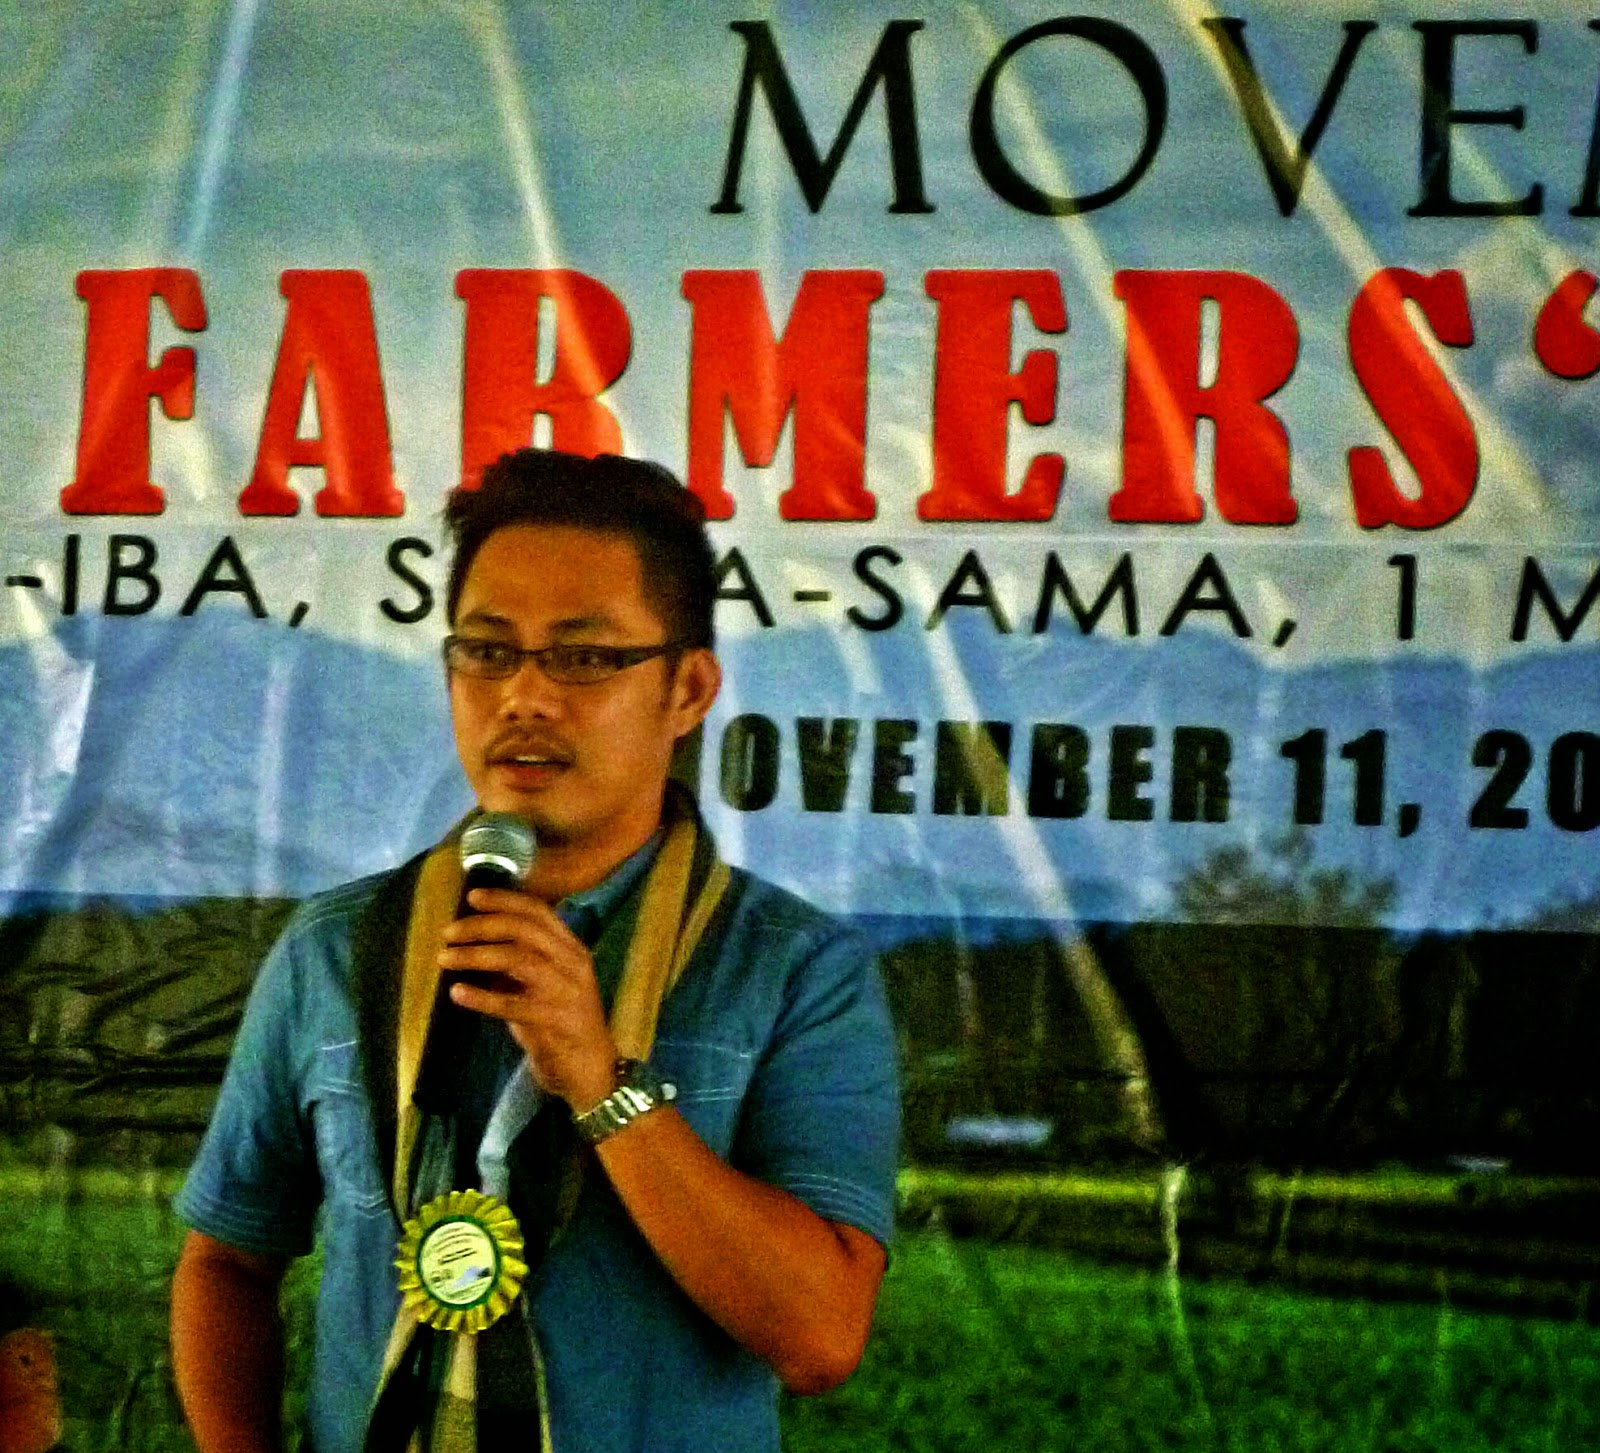 philippine rice farmers socioeconomic status essay Community-based organic agriculture in the philippines organic farmers' cooperatives integrated rice need to take into account the current socioeconomic status.